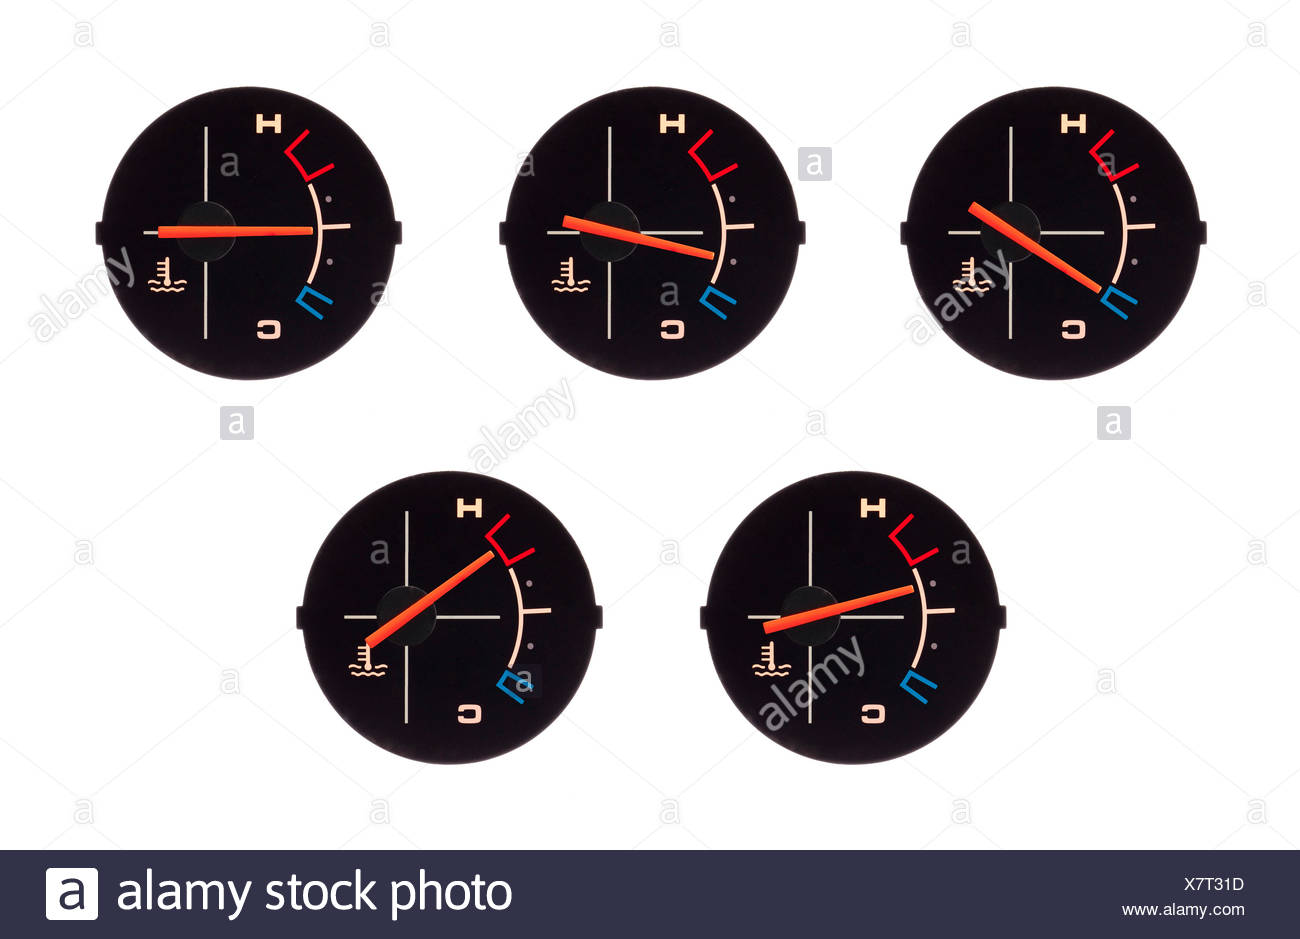 Temperature guage of a motorbike - Stock Image